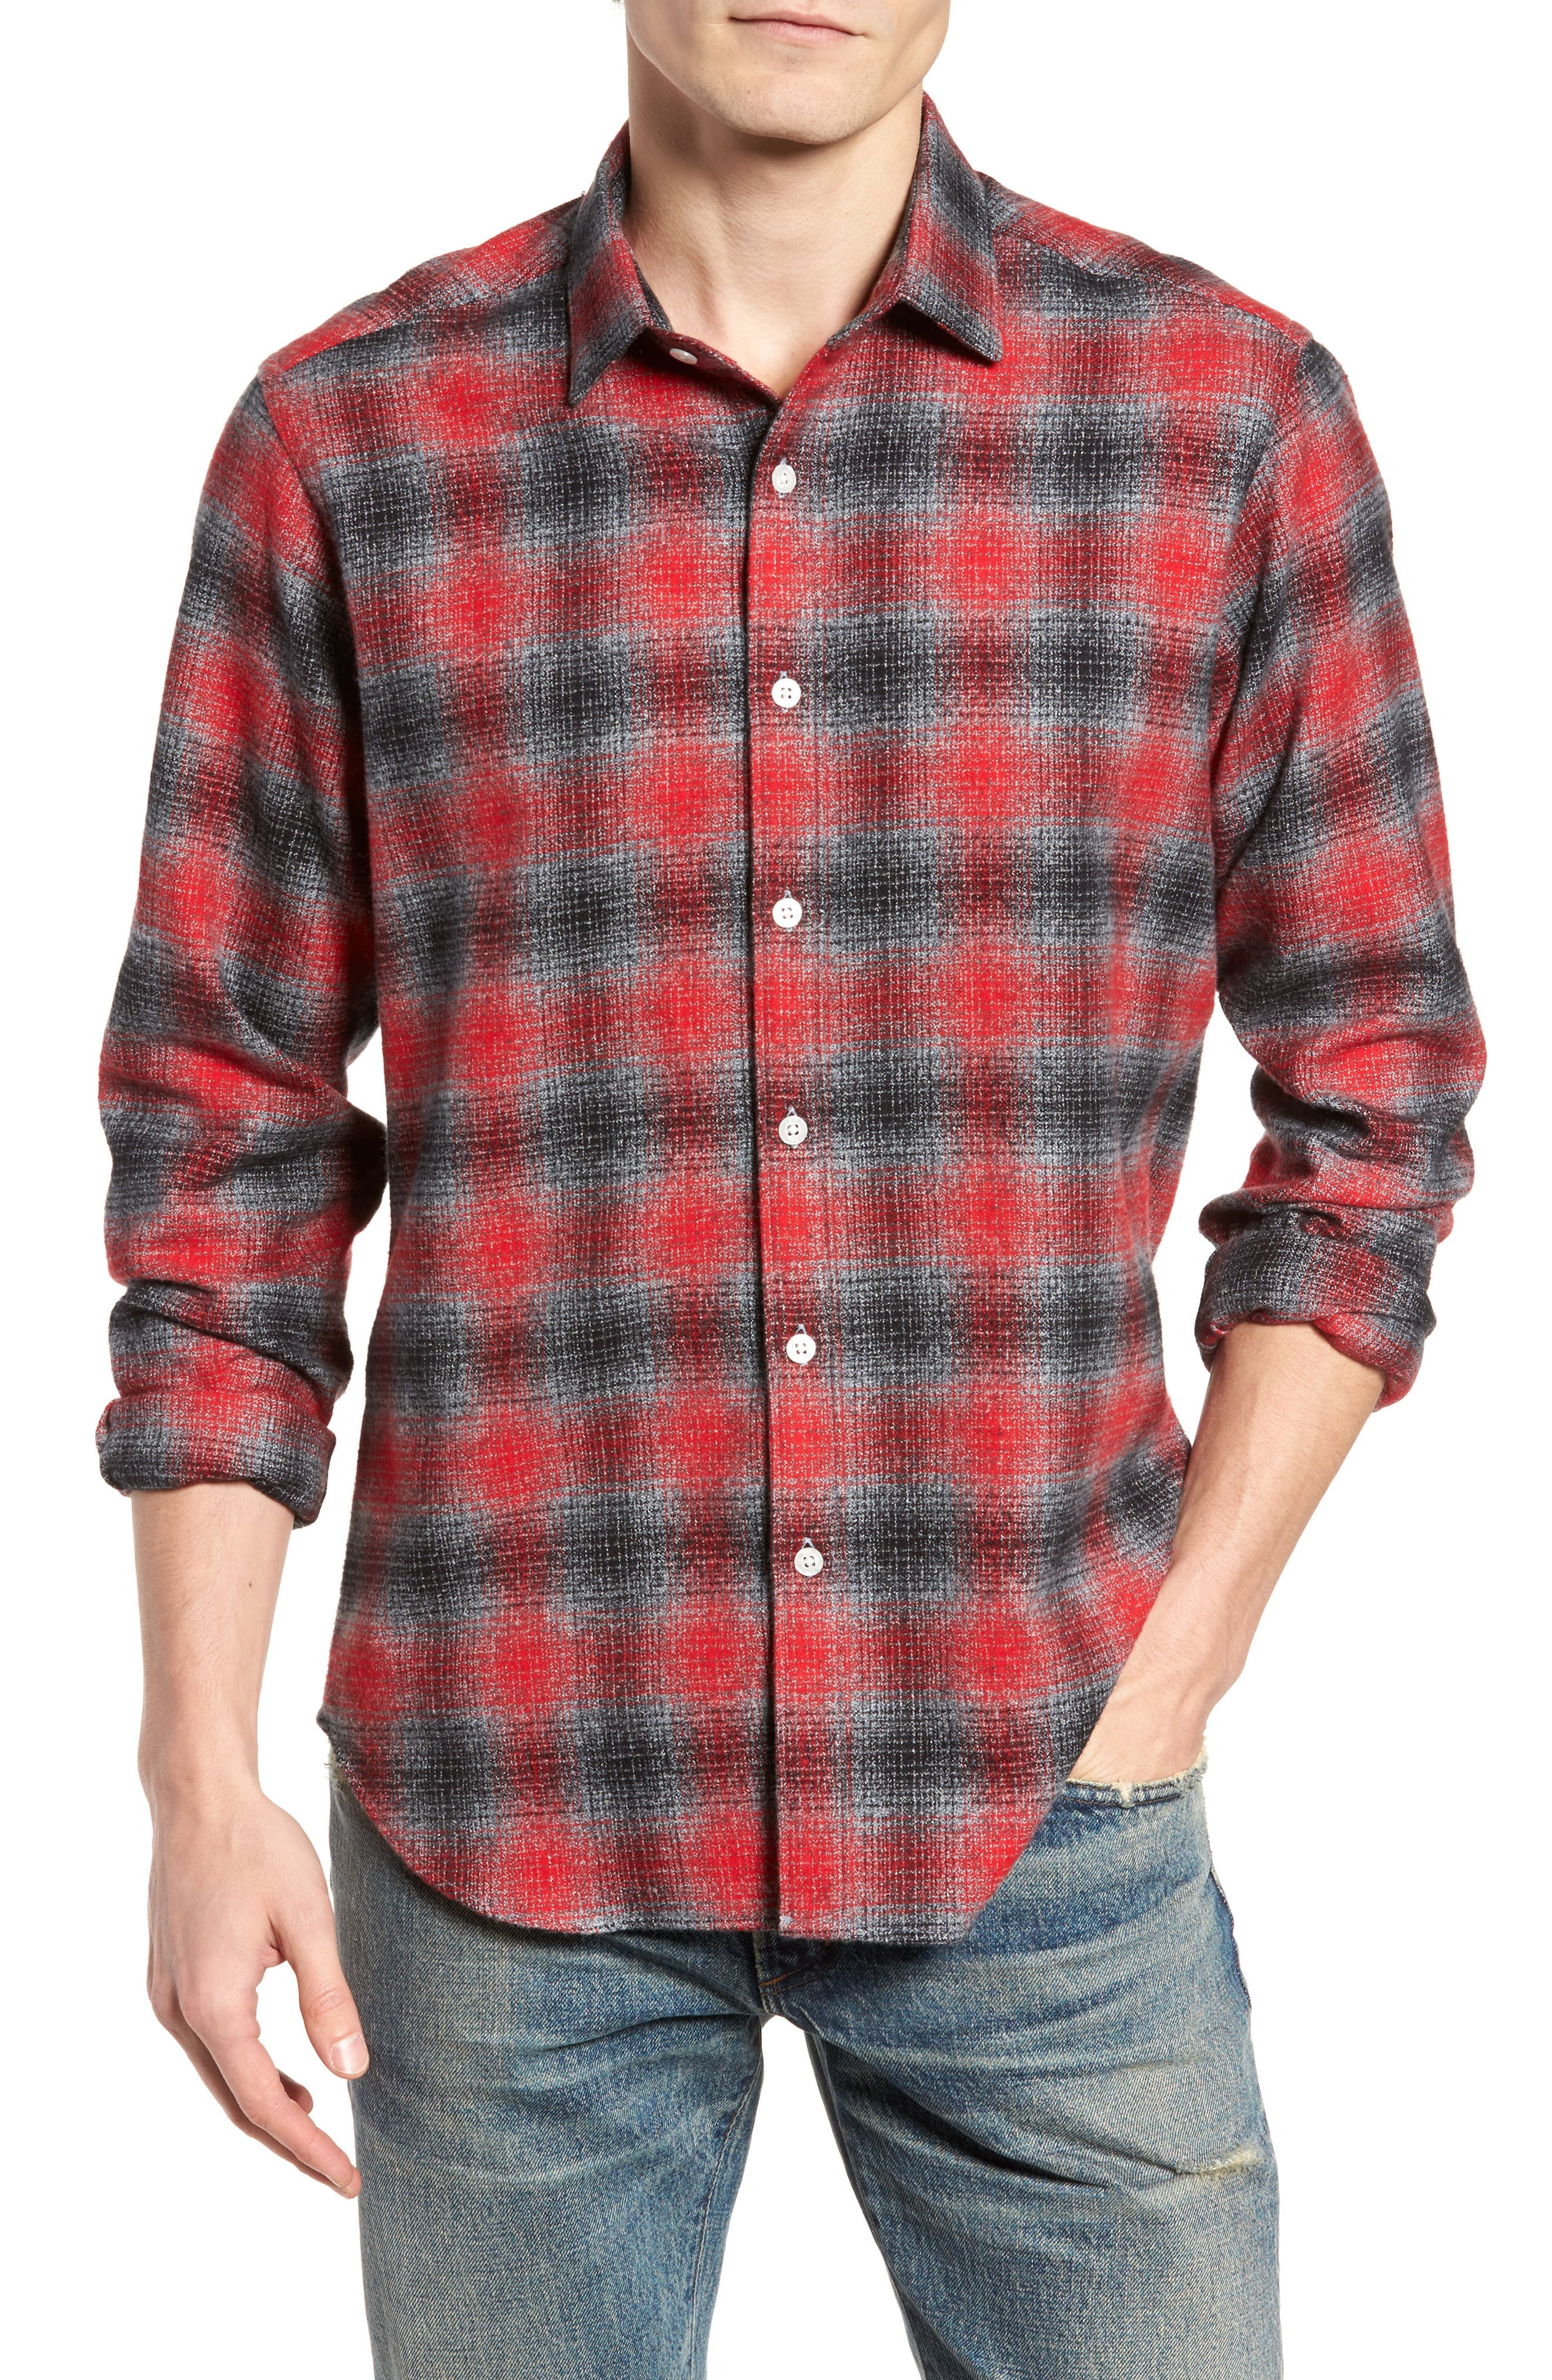 Stowe Slim Fit Plaid Sport Shirt,                         Main,                         color, Platnium Grey